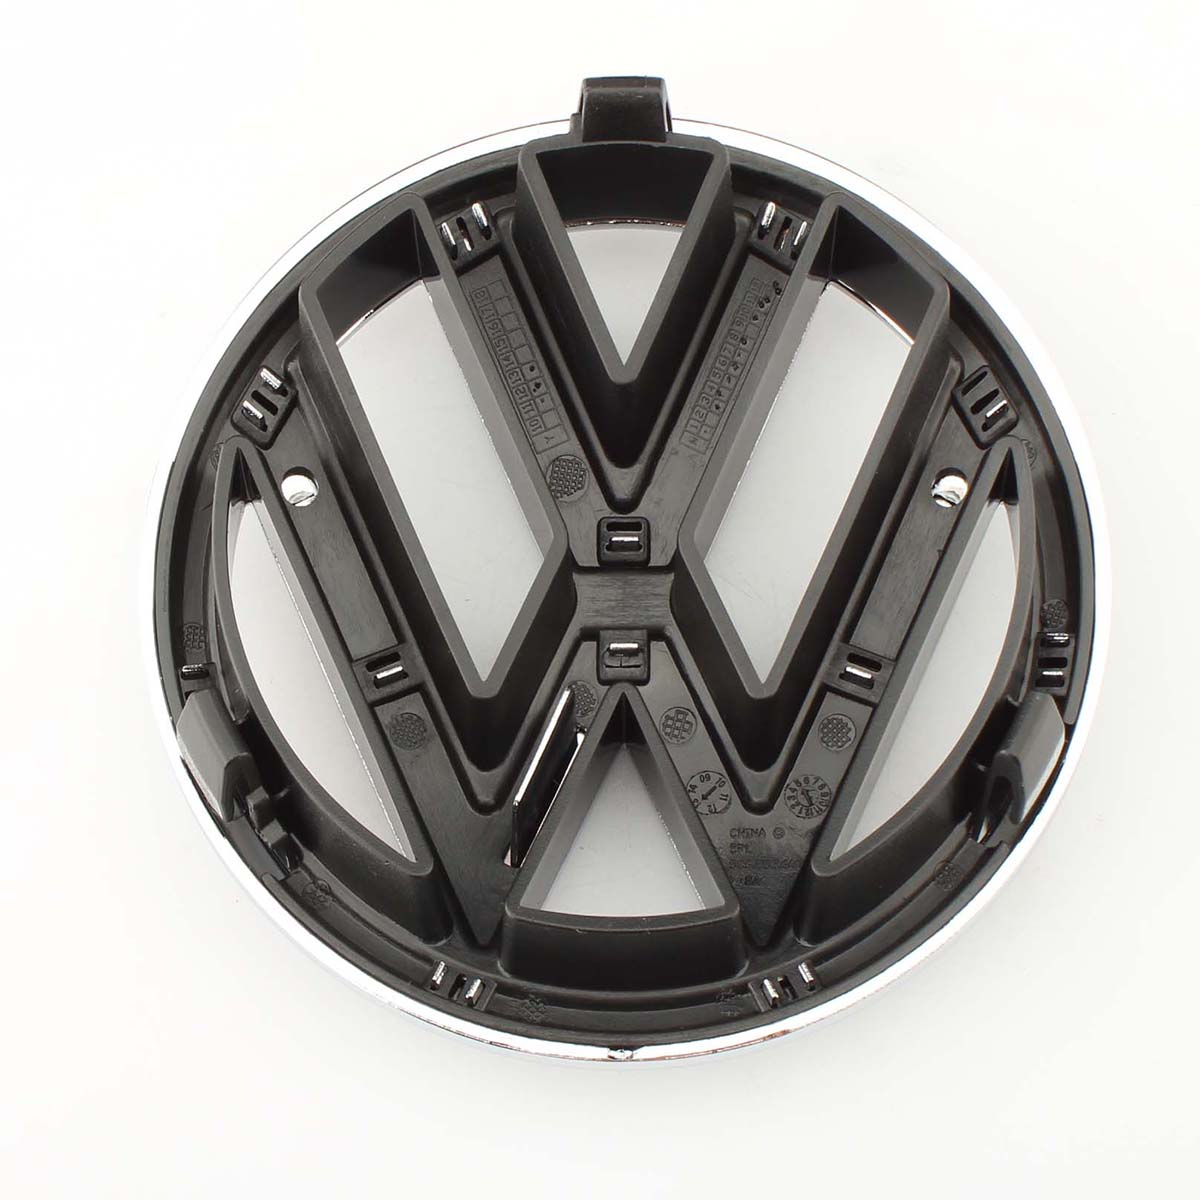 Car Auto 130mm VW Emblem Chrome OEM Front Grille Badge Sticker For Volkswagen Jetta MK6 Sedan 2011 2015 5C6 853 601 5C6853601ULM in Emblems from Automobiles Motorcycles